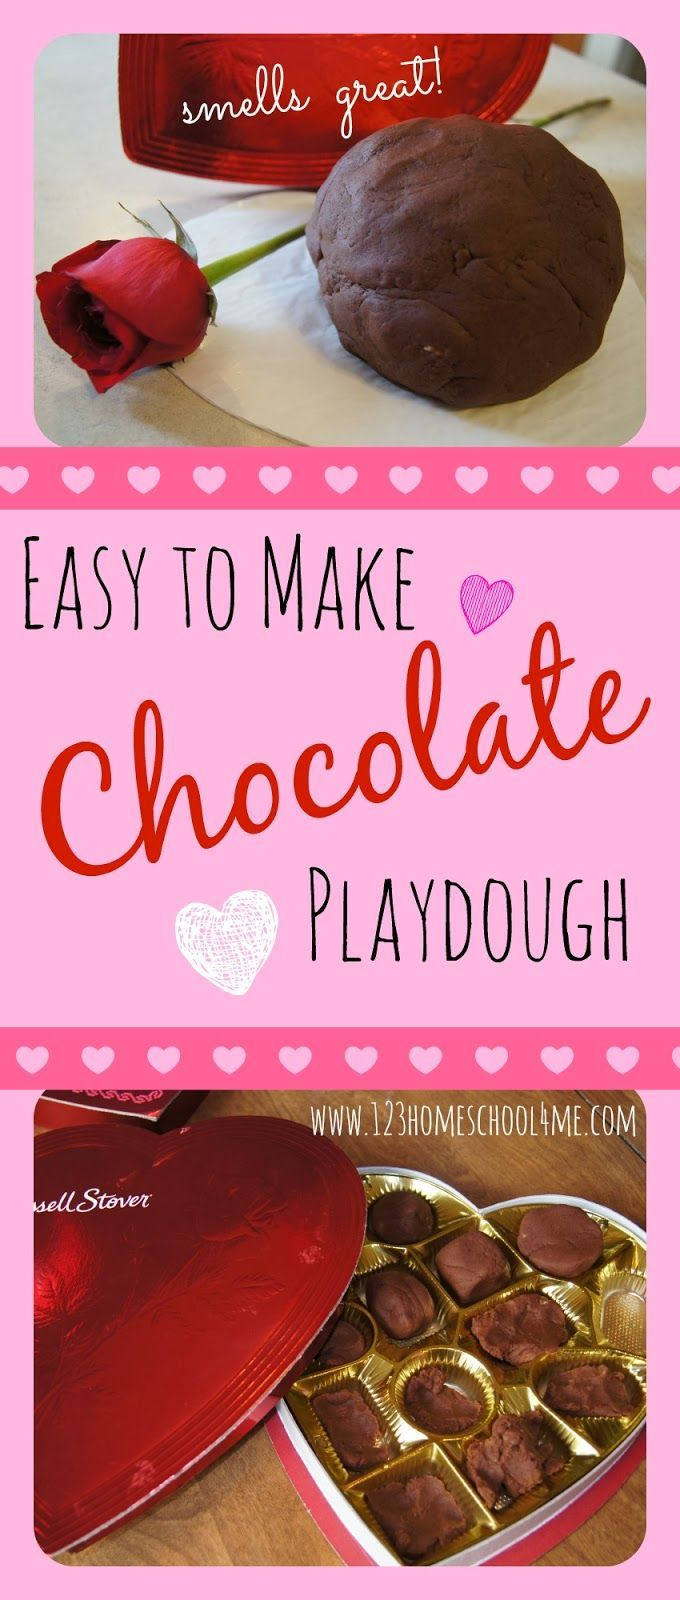 83269ade2869a713cd417641724b7e2b playdough activities kid activities - How to make Chocolate Playdough Recipe - Great Valentine's Day Sensory Play ...